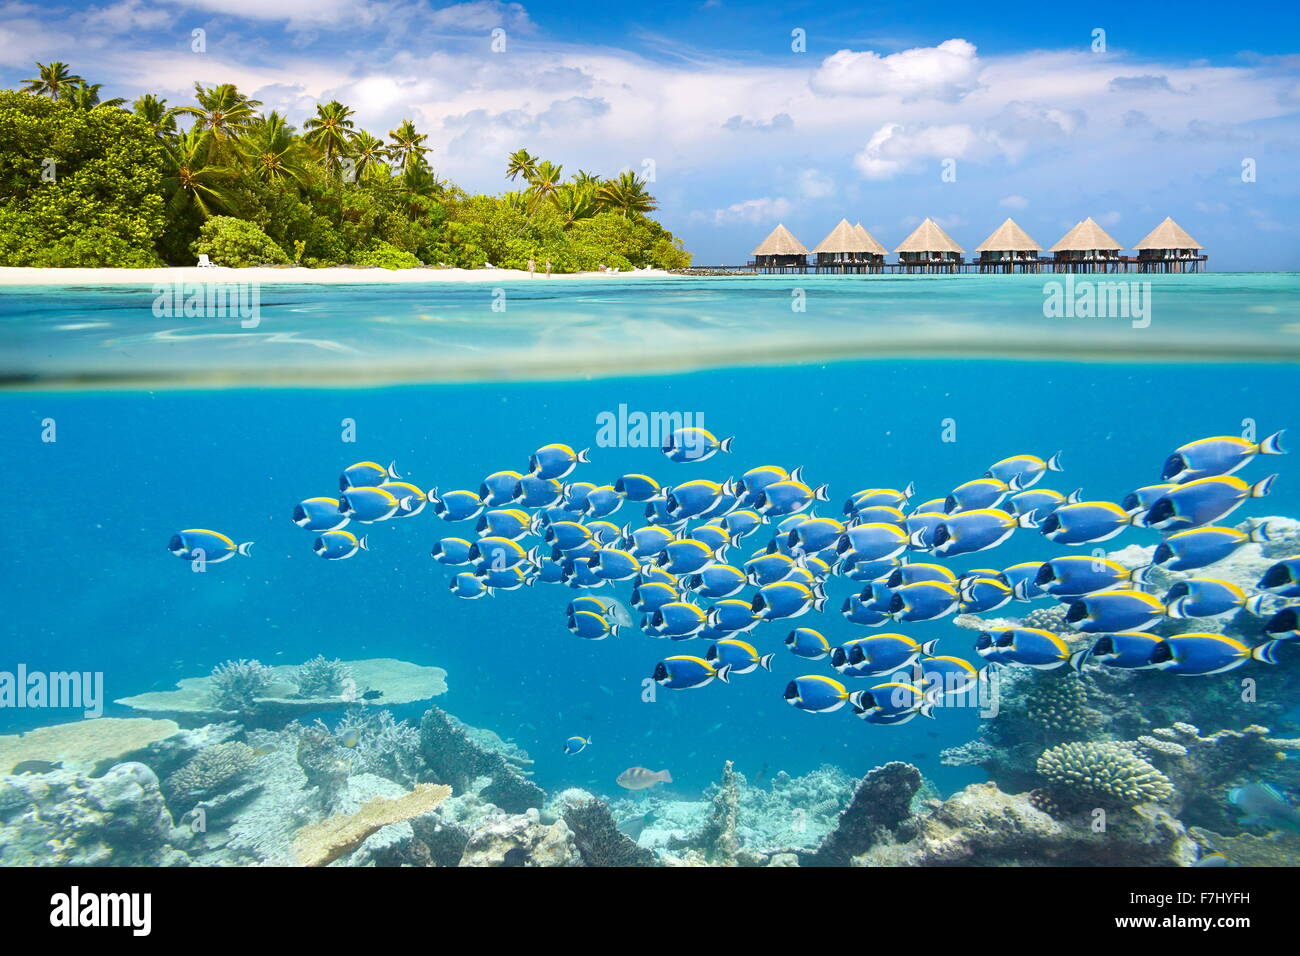 Maldives Island - underwater view with shoal of fish - Stock Image